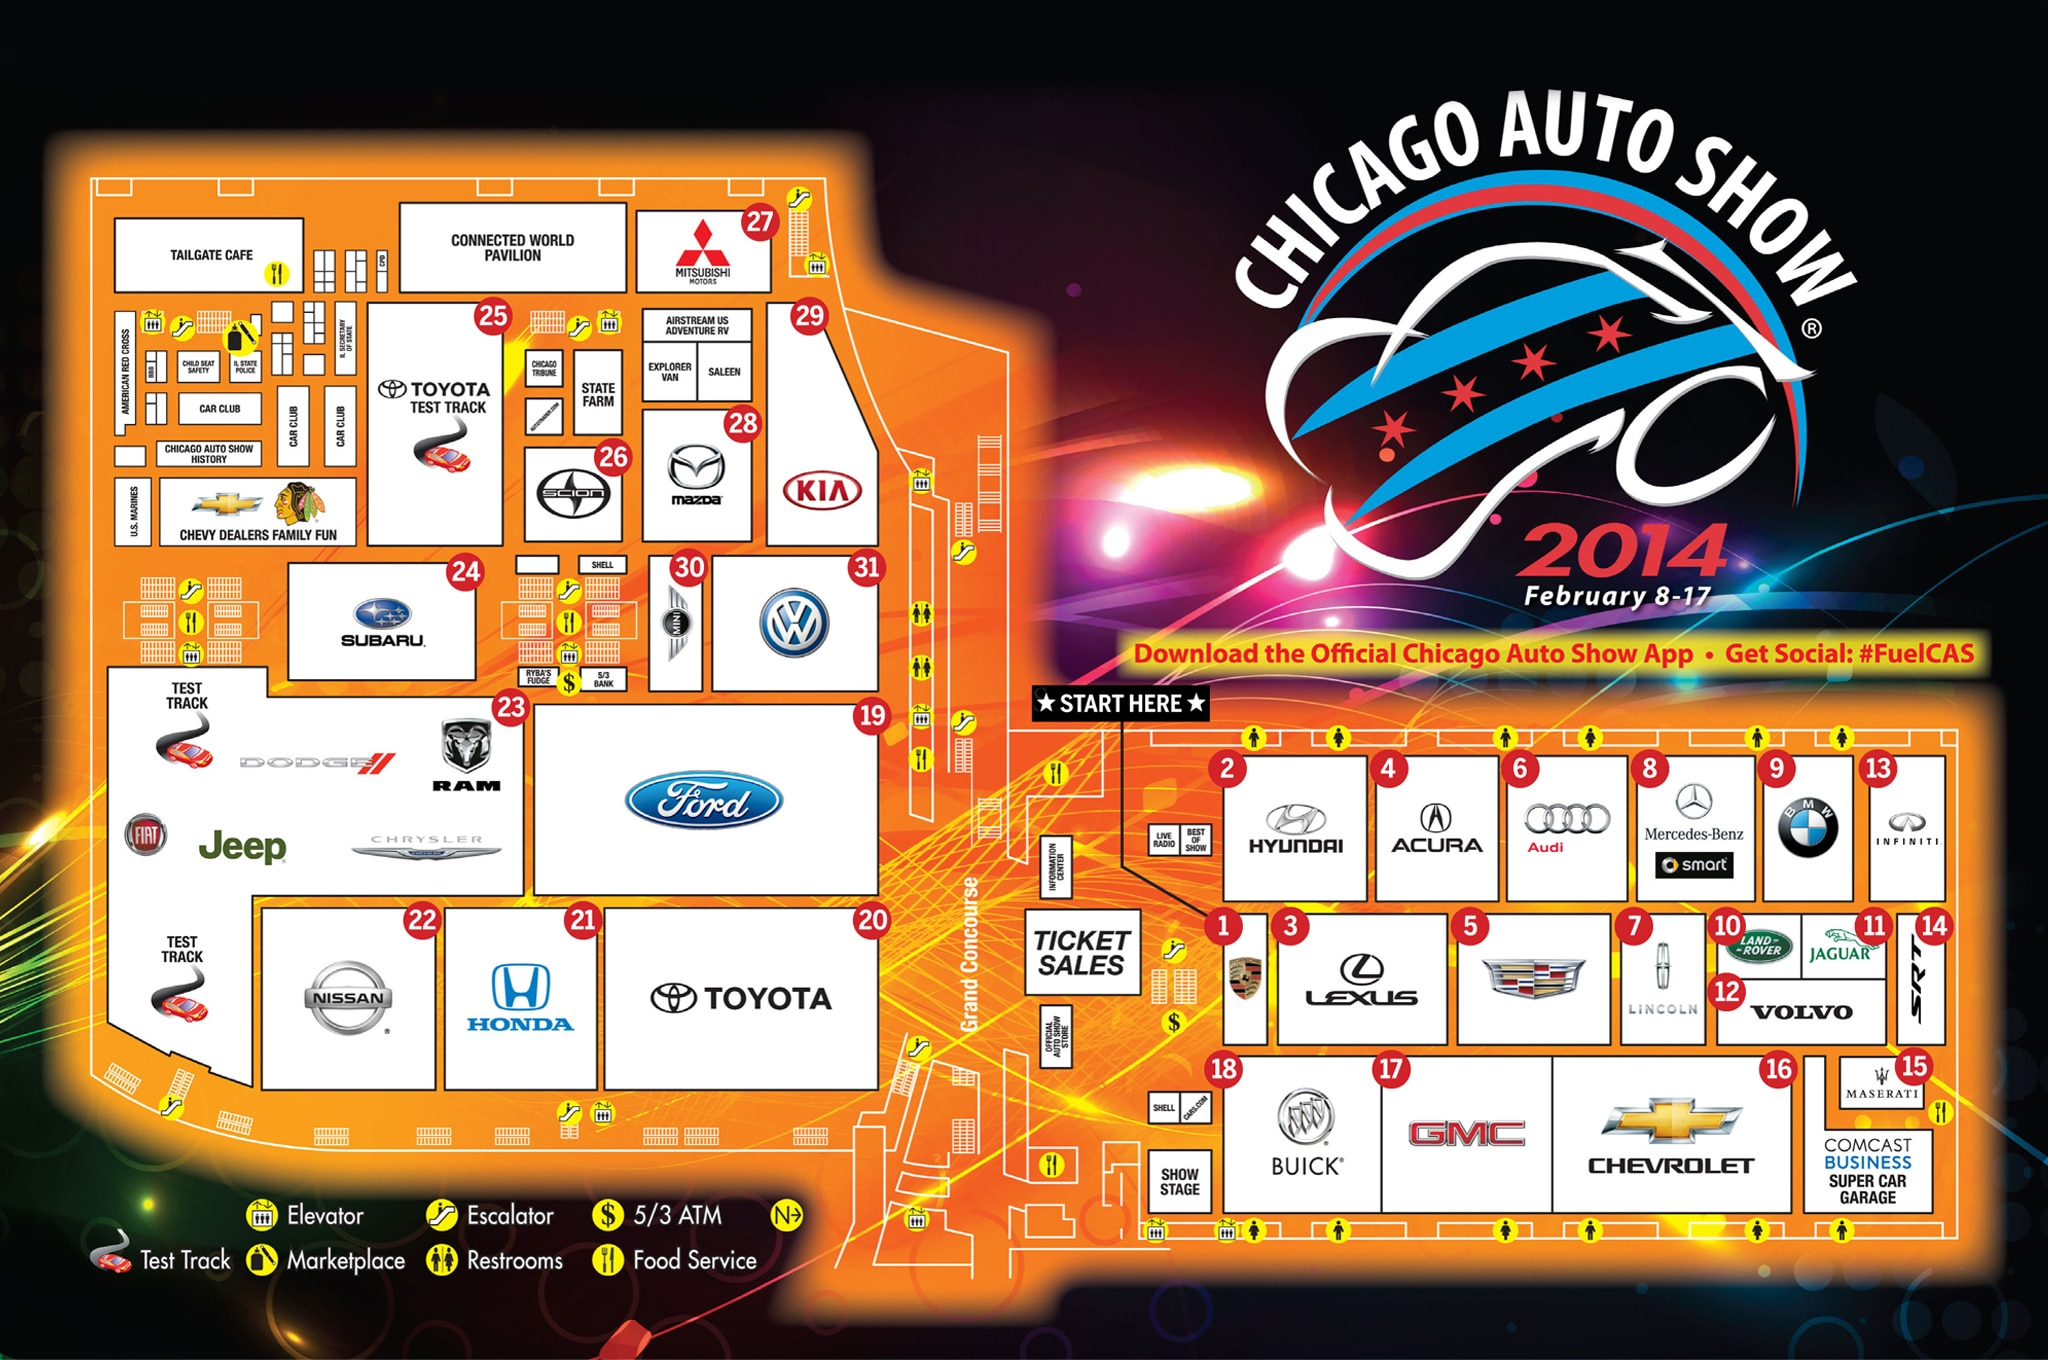 2014 Chicago Auto Show Walking Guide Floorplan Image